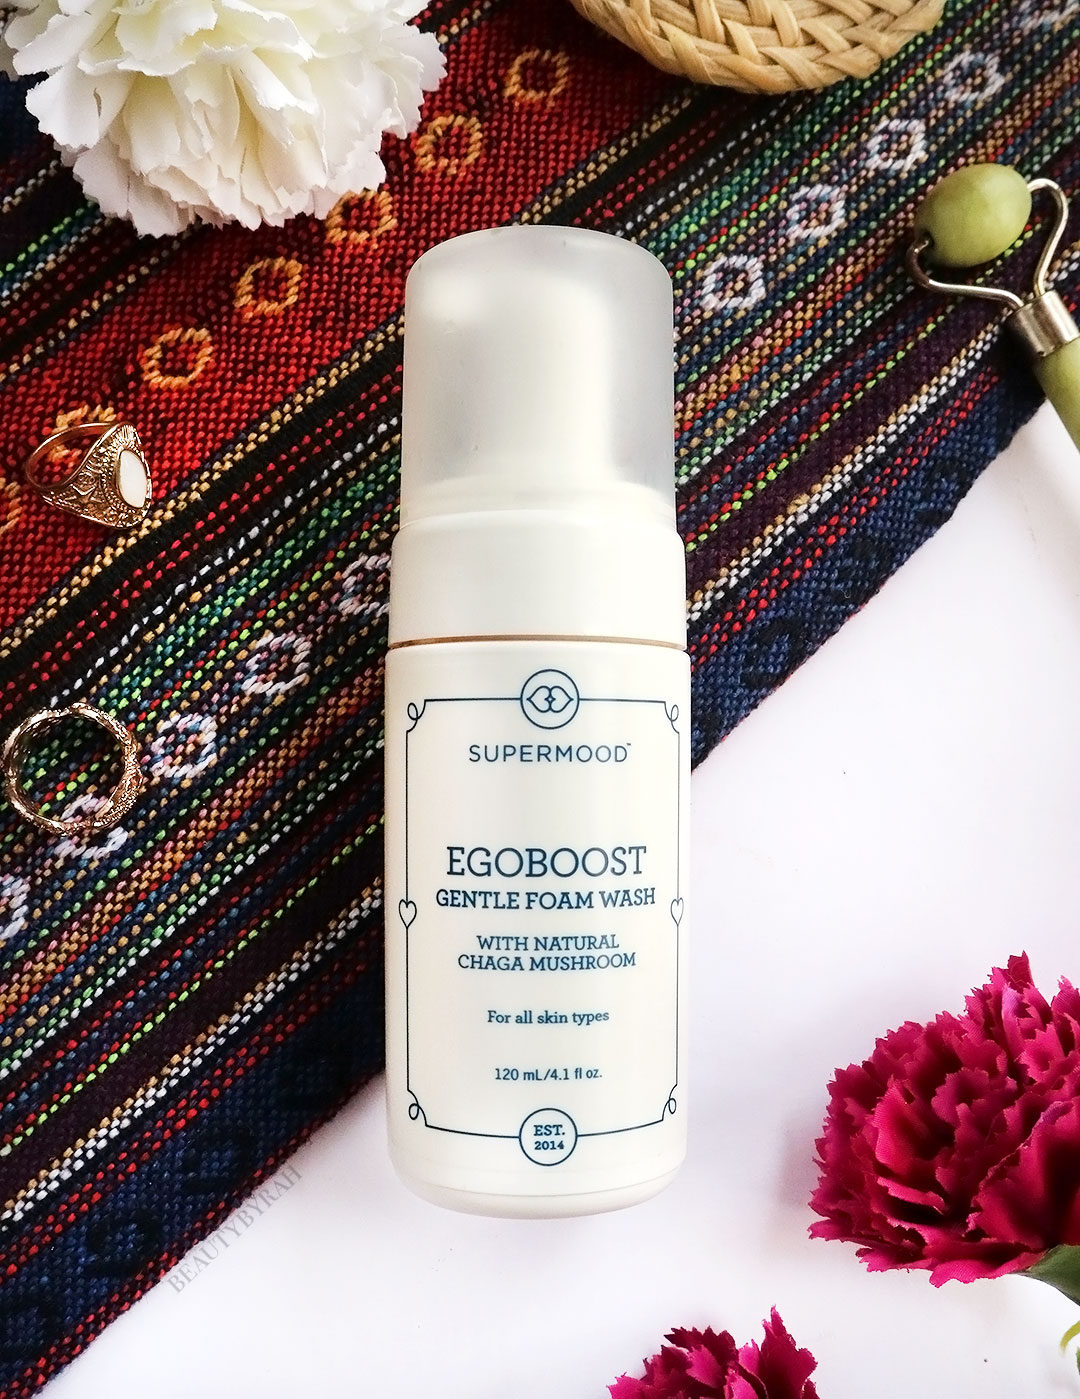 Supermood Egoboost Gentle Foam Wash Review